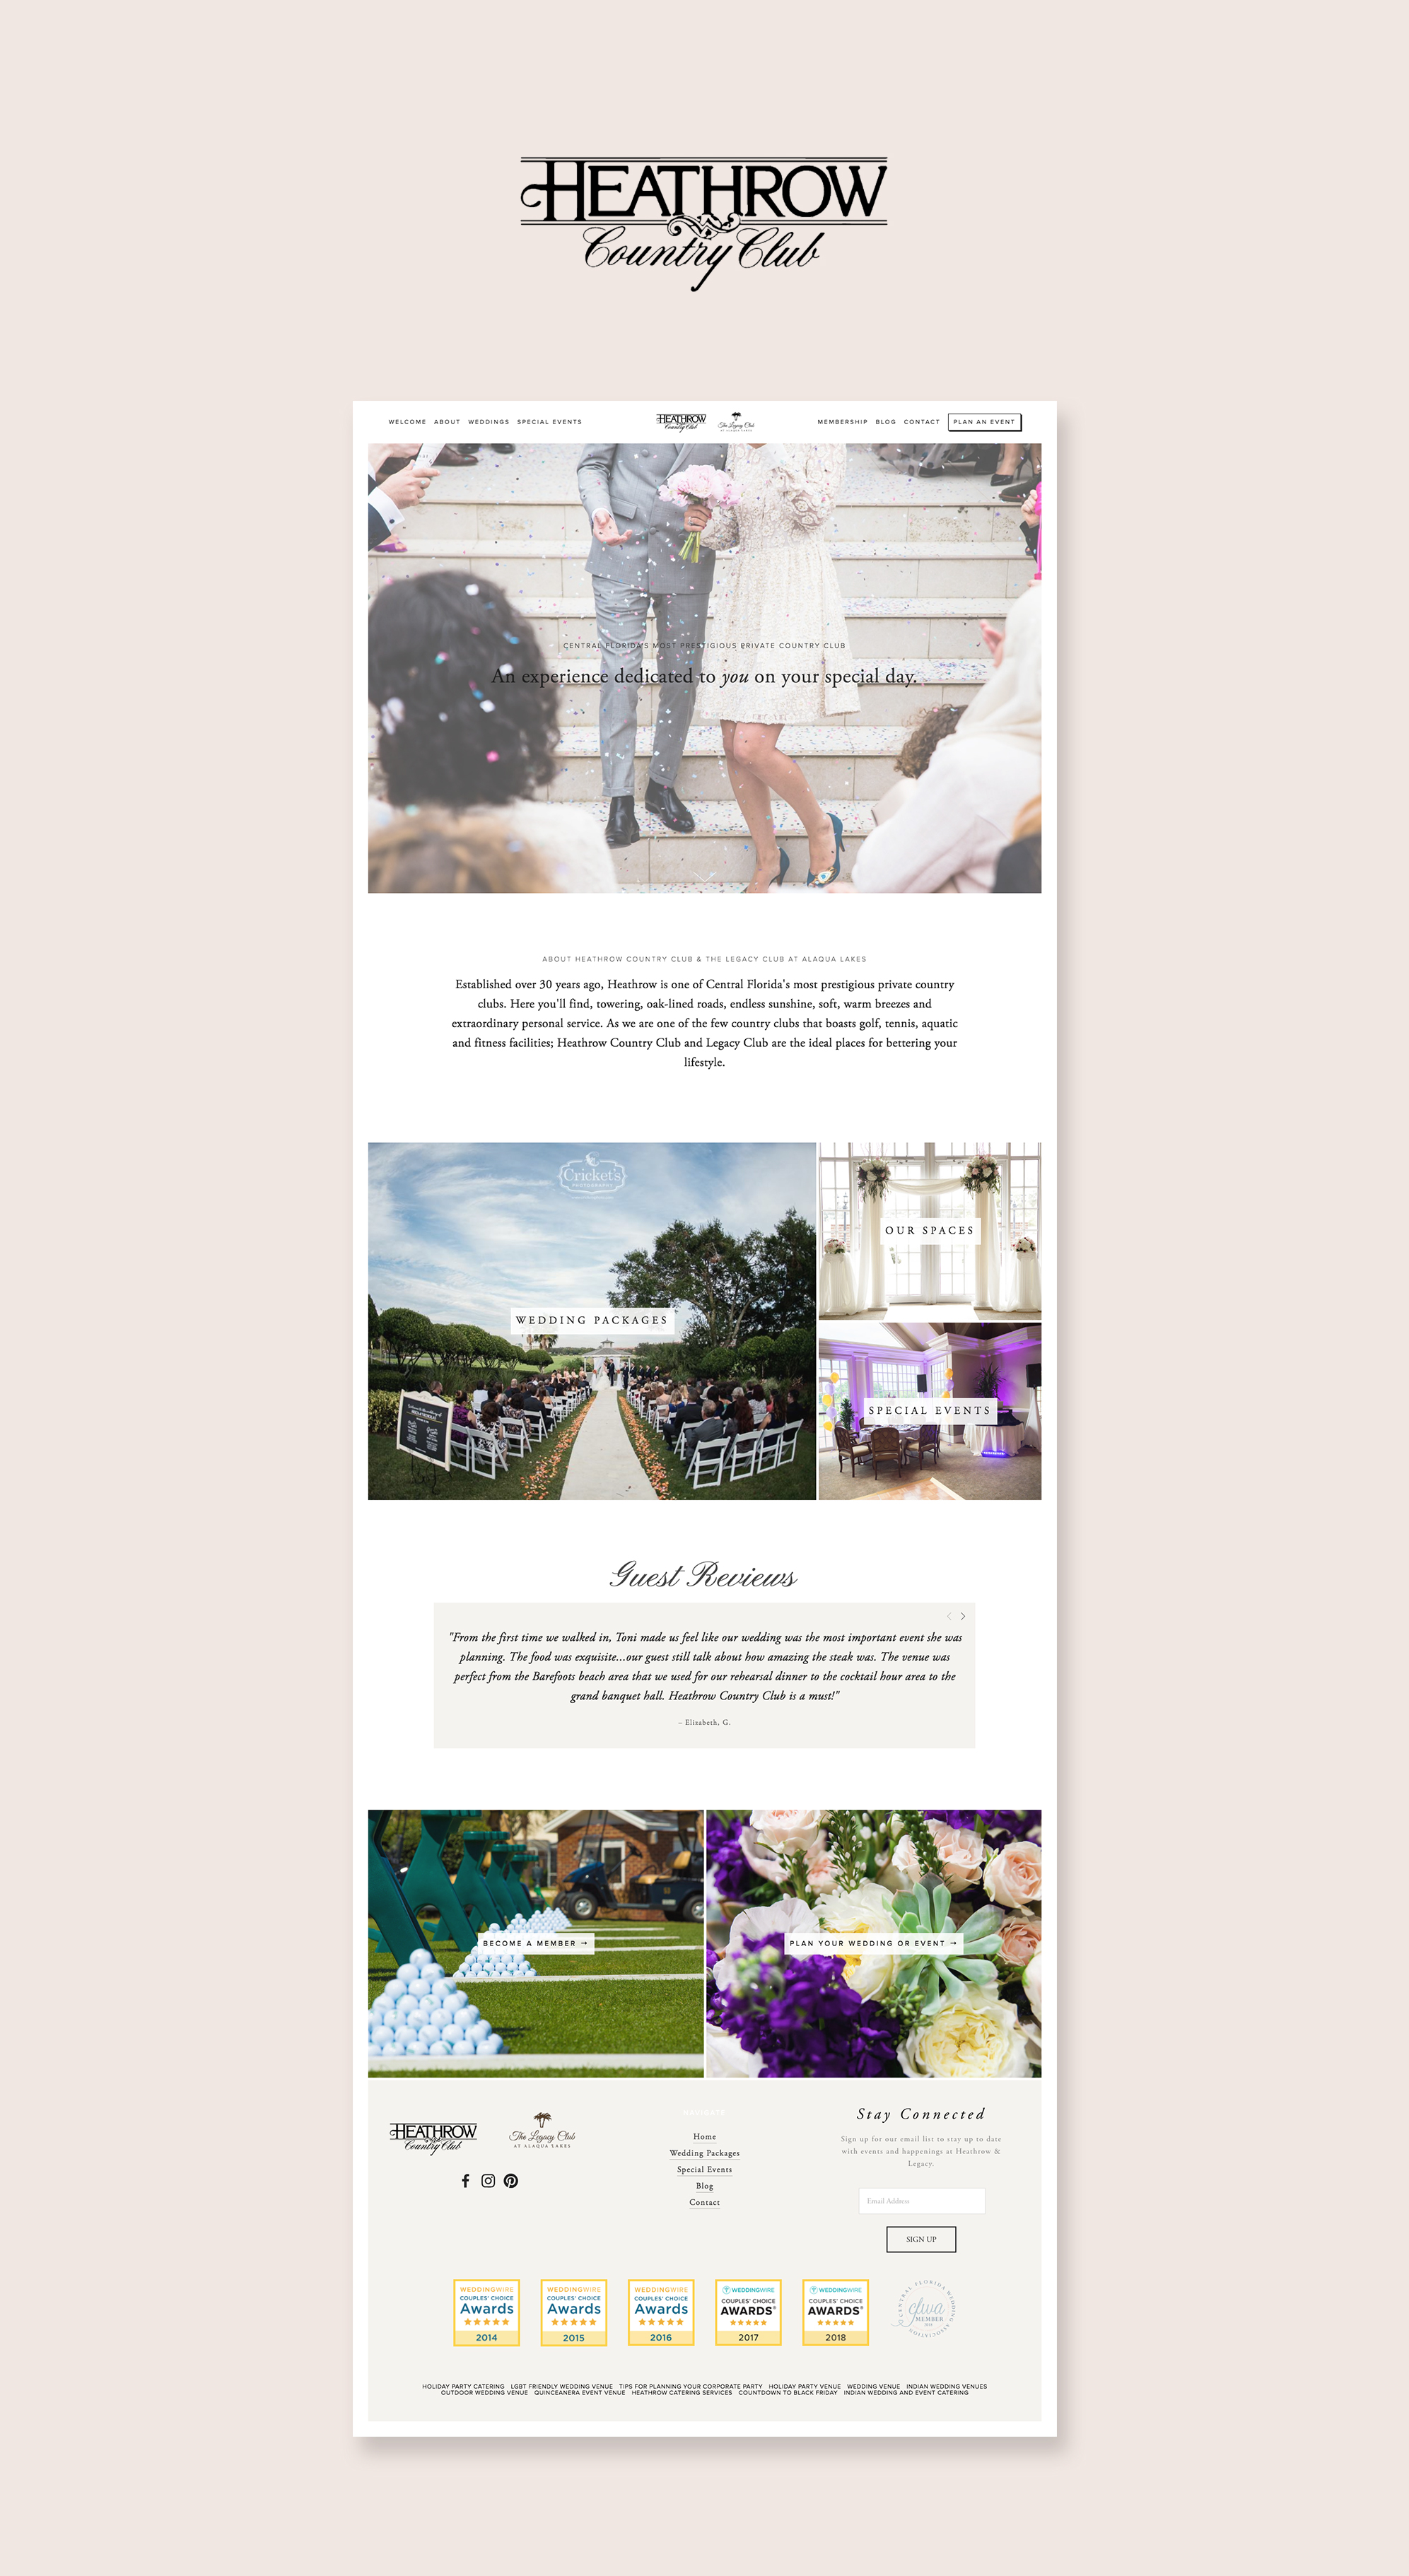 Squarespace Website Design Services - Heathrow Country Club